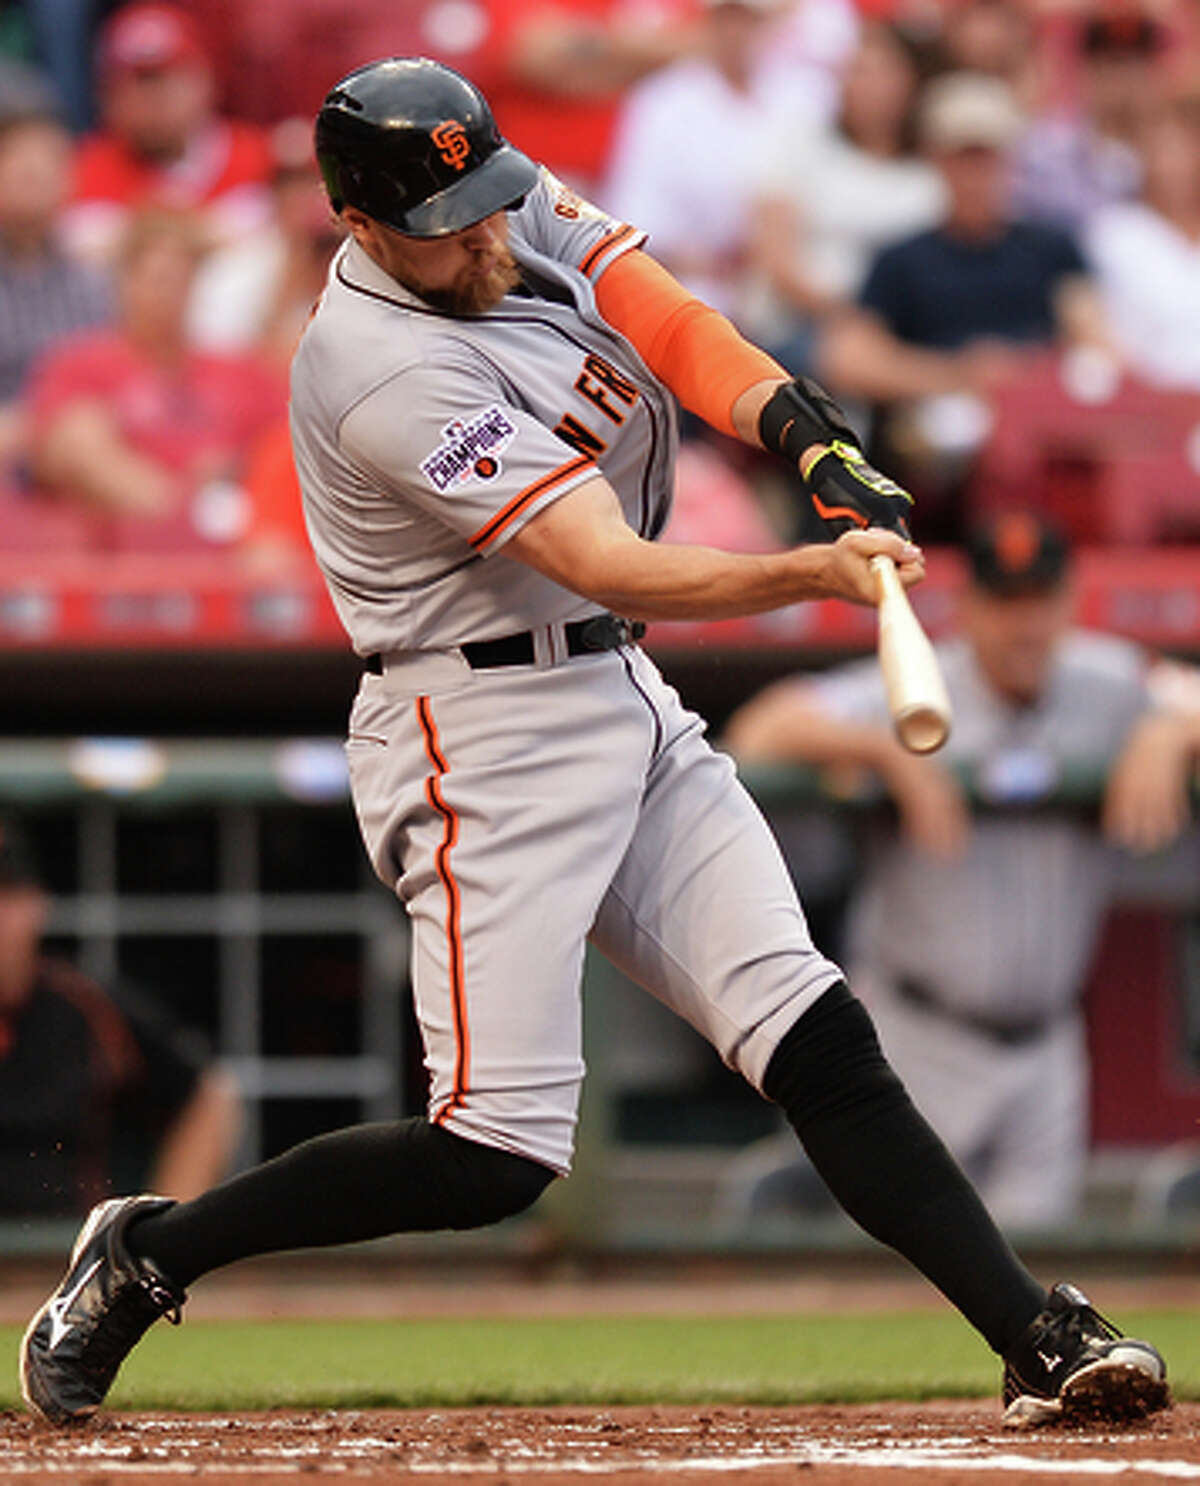 Hunter Pence connects for a double in his first at-bat of the season.